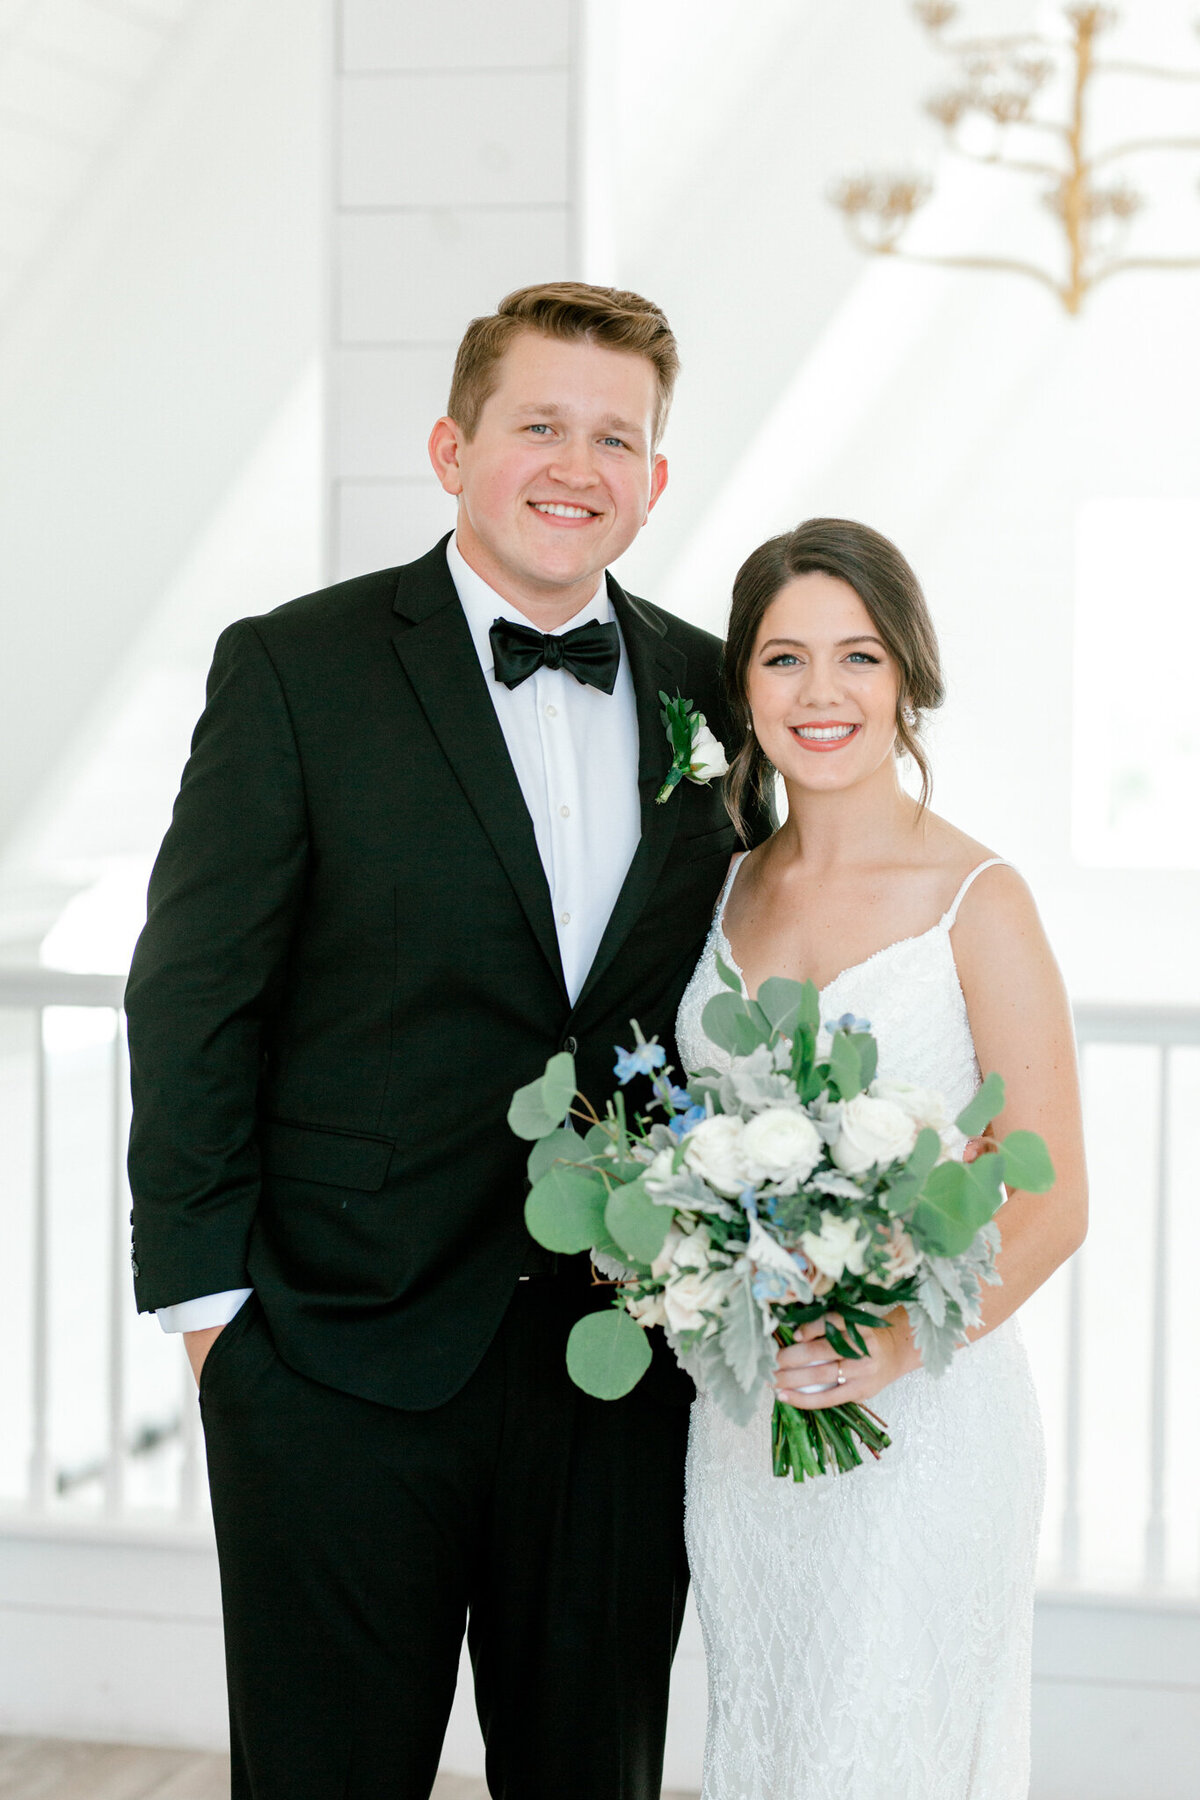 Anna & Billy's Wedding at The Nest at Ruth Farms | Dallas Wedding Photographer | Sami Kathryn Photography-94